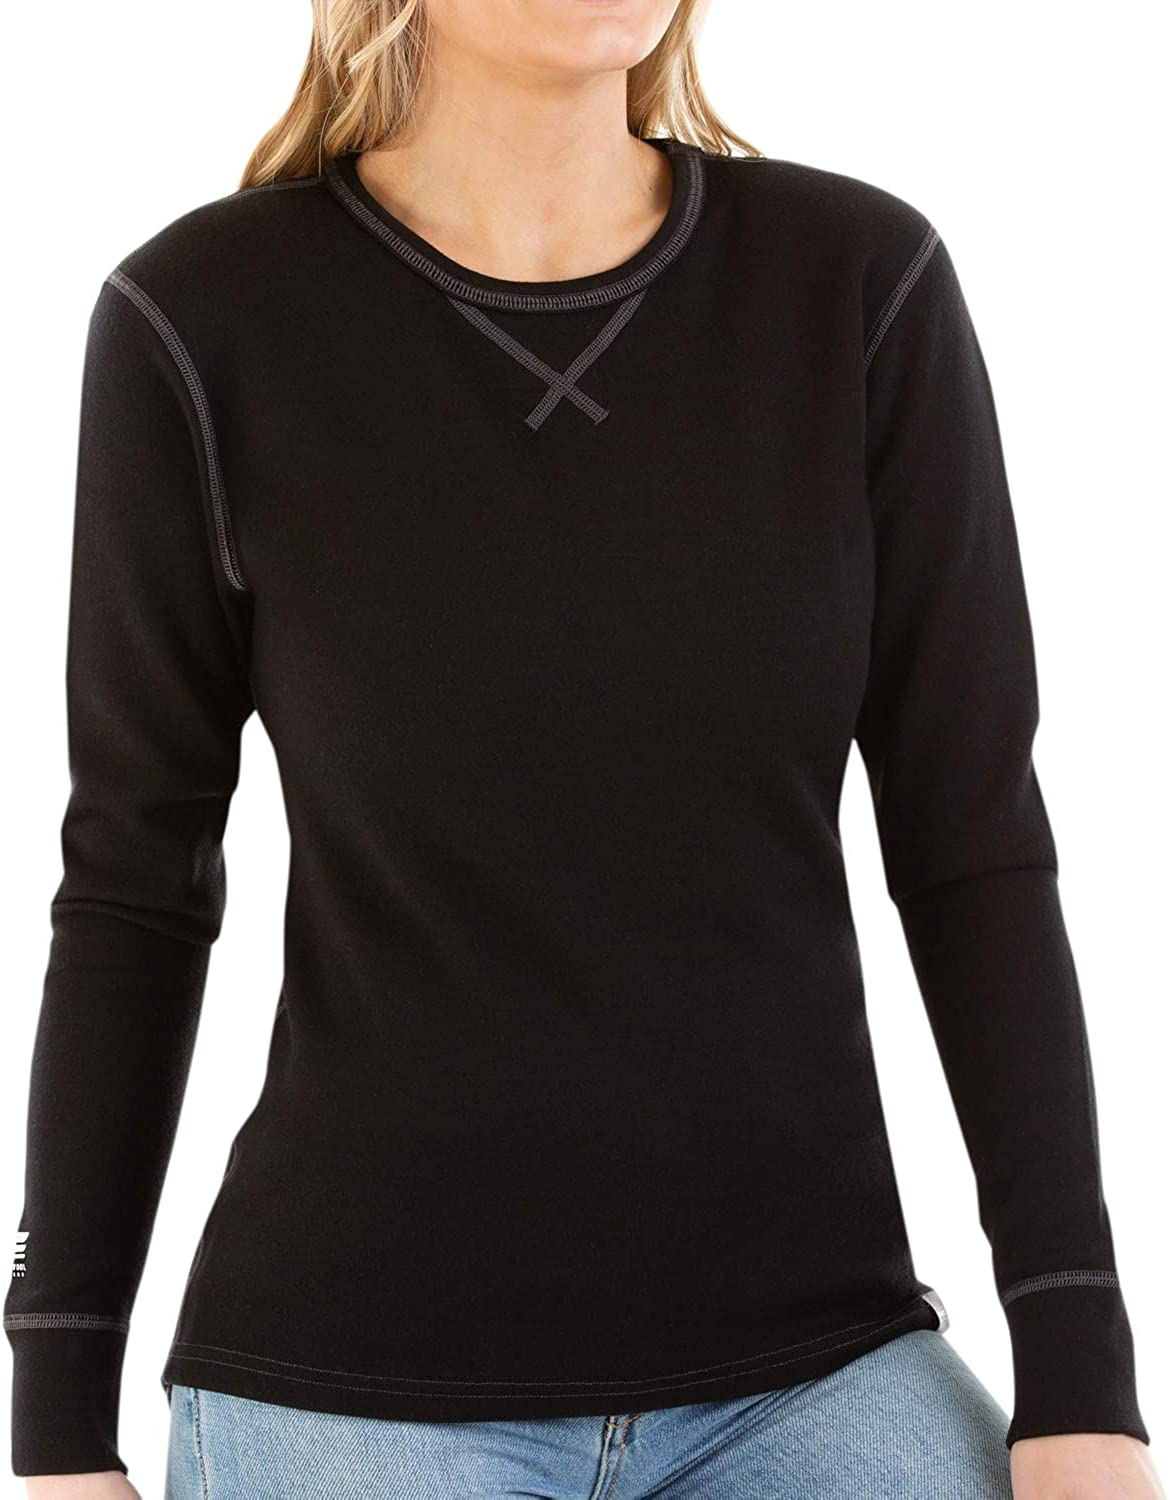 MERIWOOL Womens Base Layer 100% The Merino Heavyweight Wool Limited time for free shipping specialty shop 400g